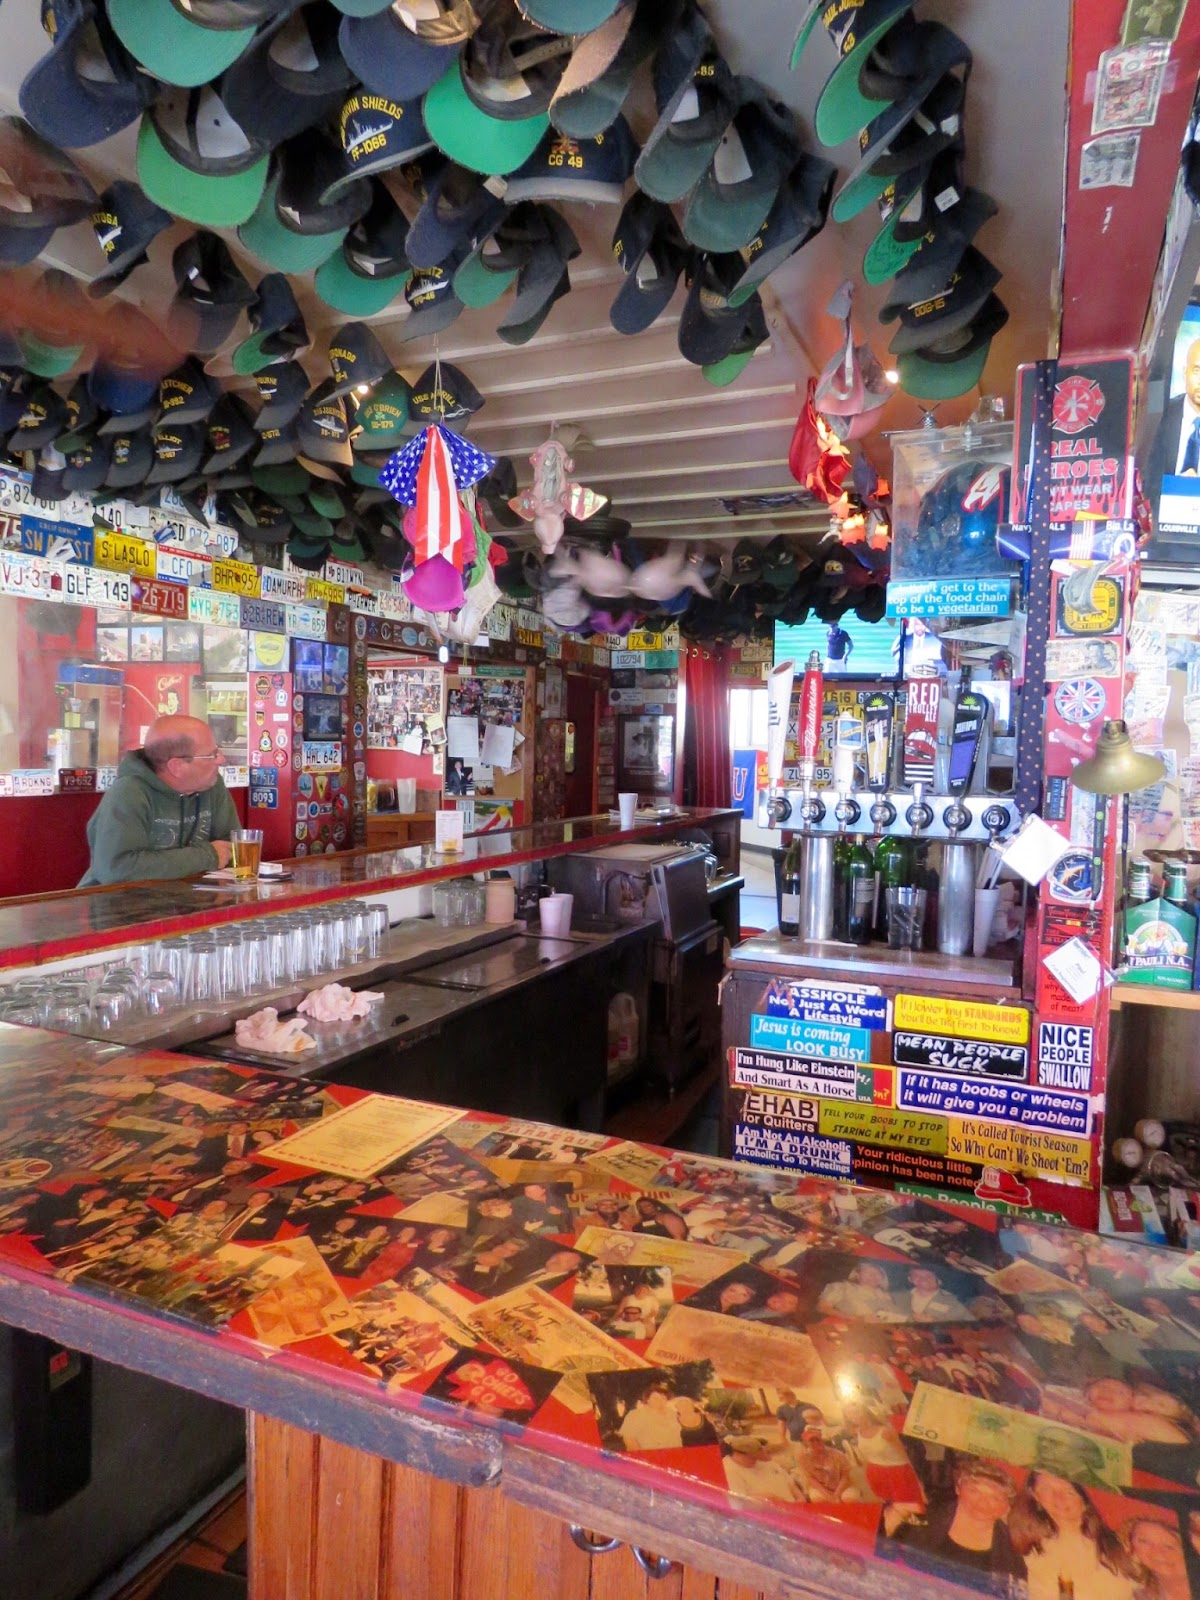 Bar Scenes For The Movie, Top Gun, Were Filmed At This Restaurant.